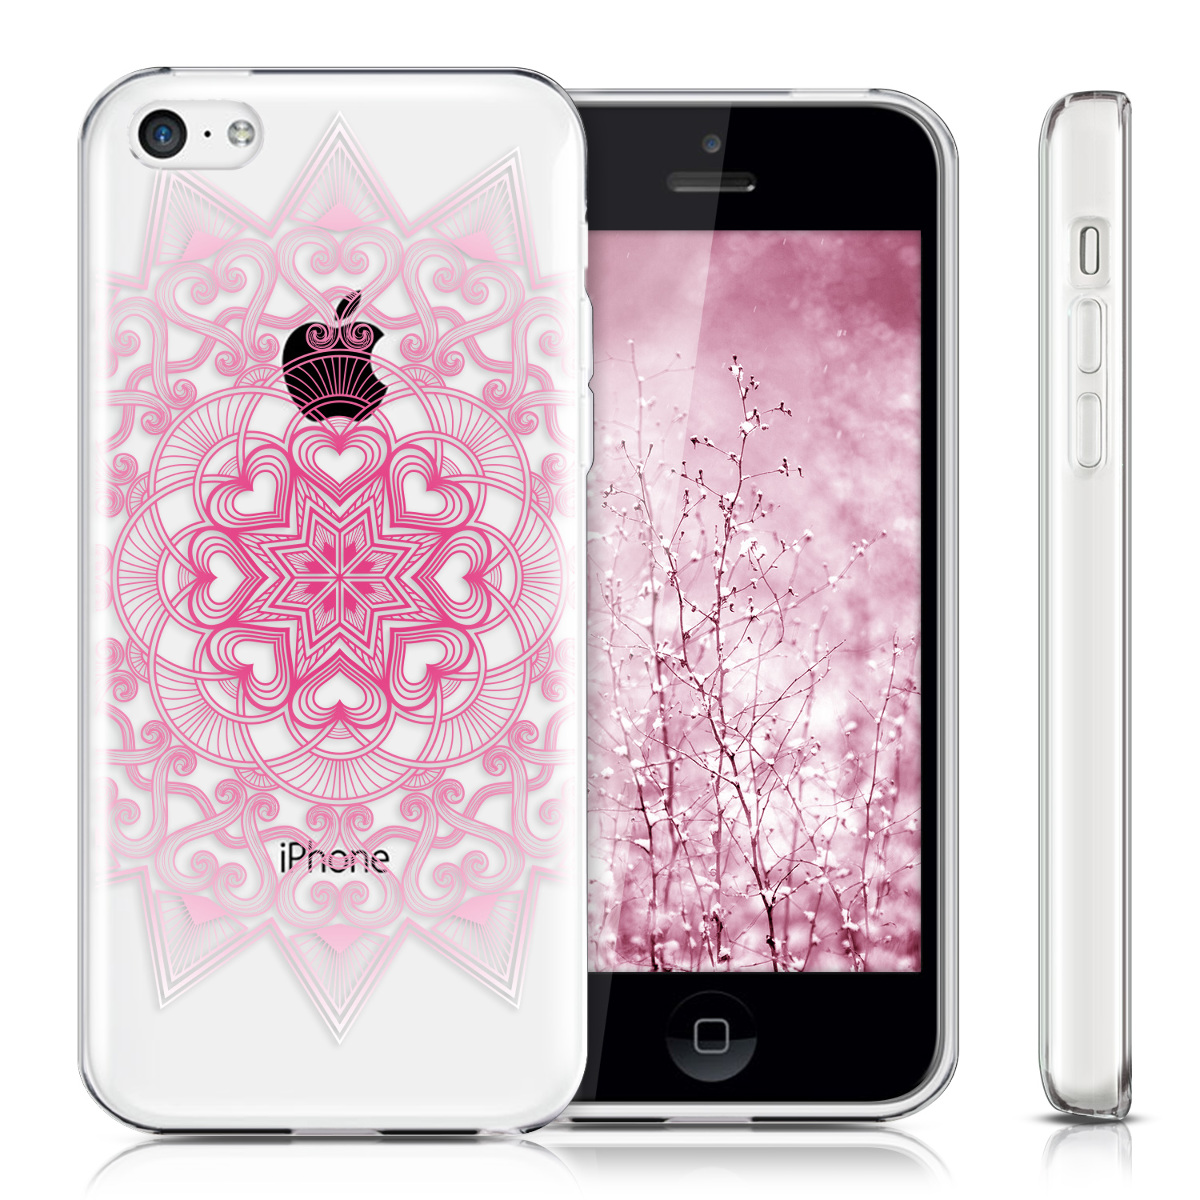 kwmobile-ETUI-TRANSPARENT-EN-SILICONE-TPU-POUR-APPLE-IPHONE-5C-DESIGN-IMD-VERSO